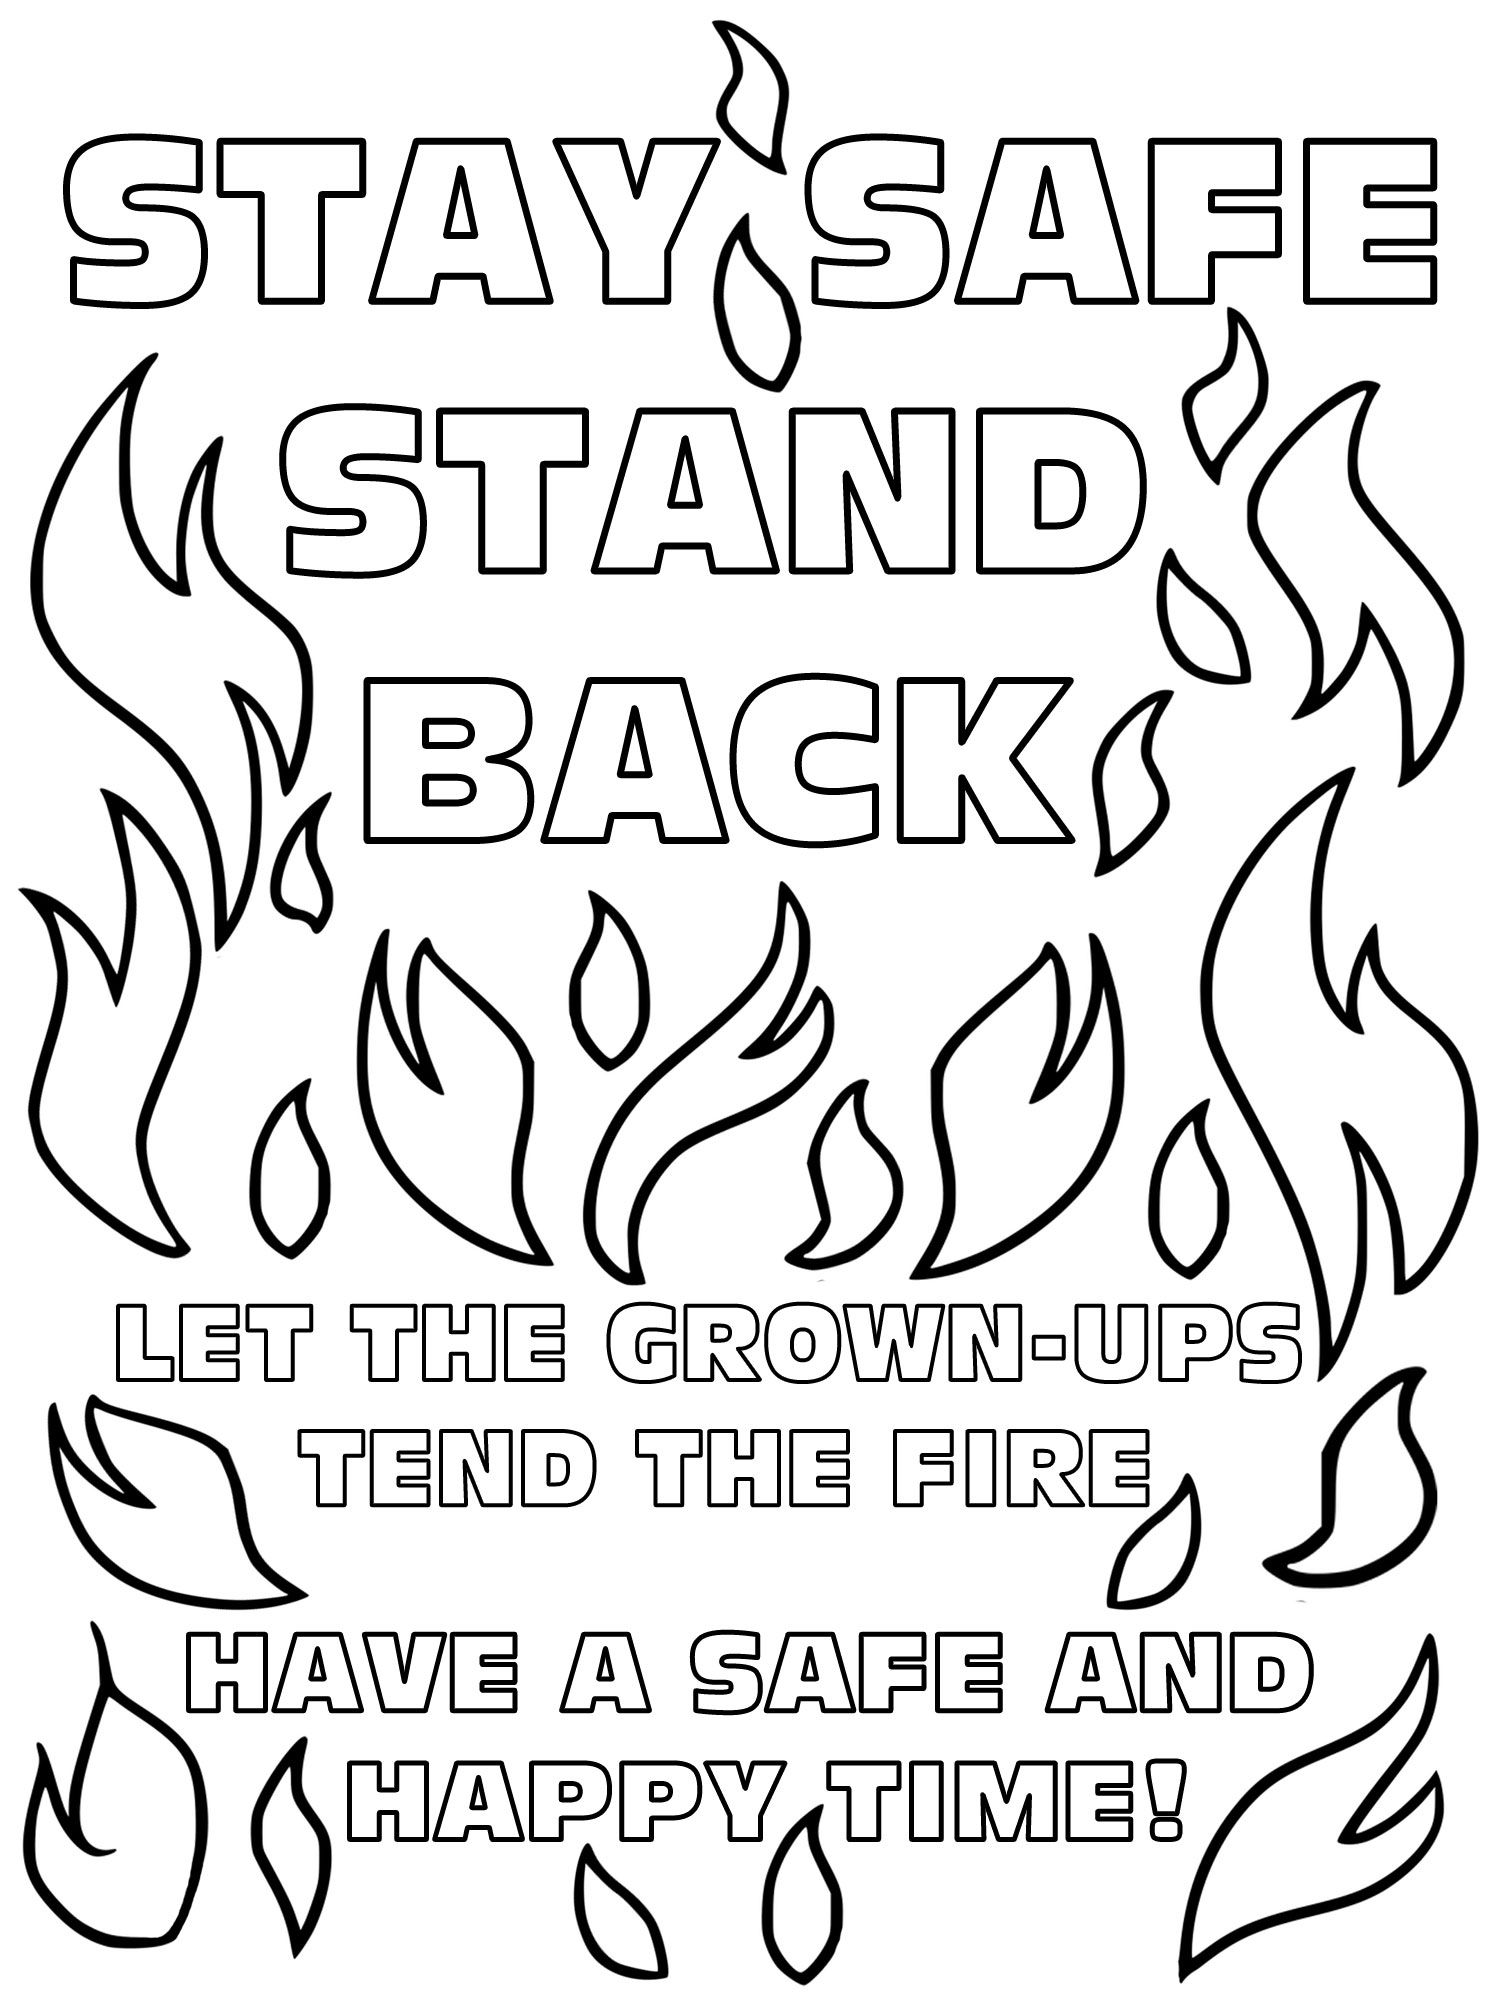 Printable Bonfire Safety Poster For Kids To Colour In